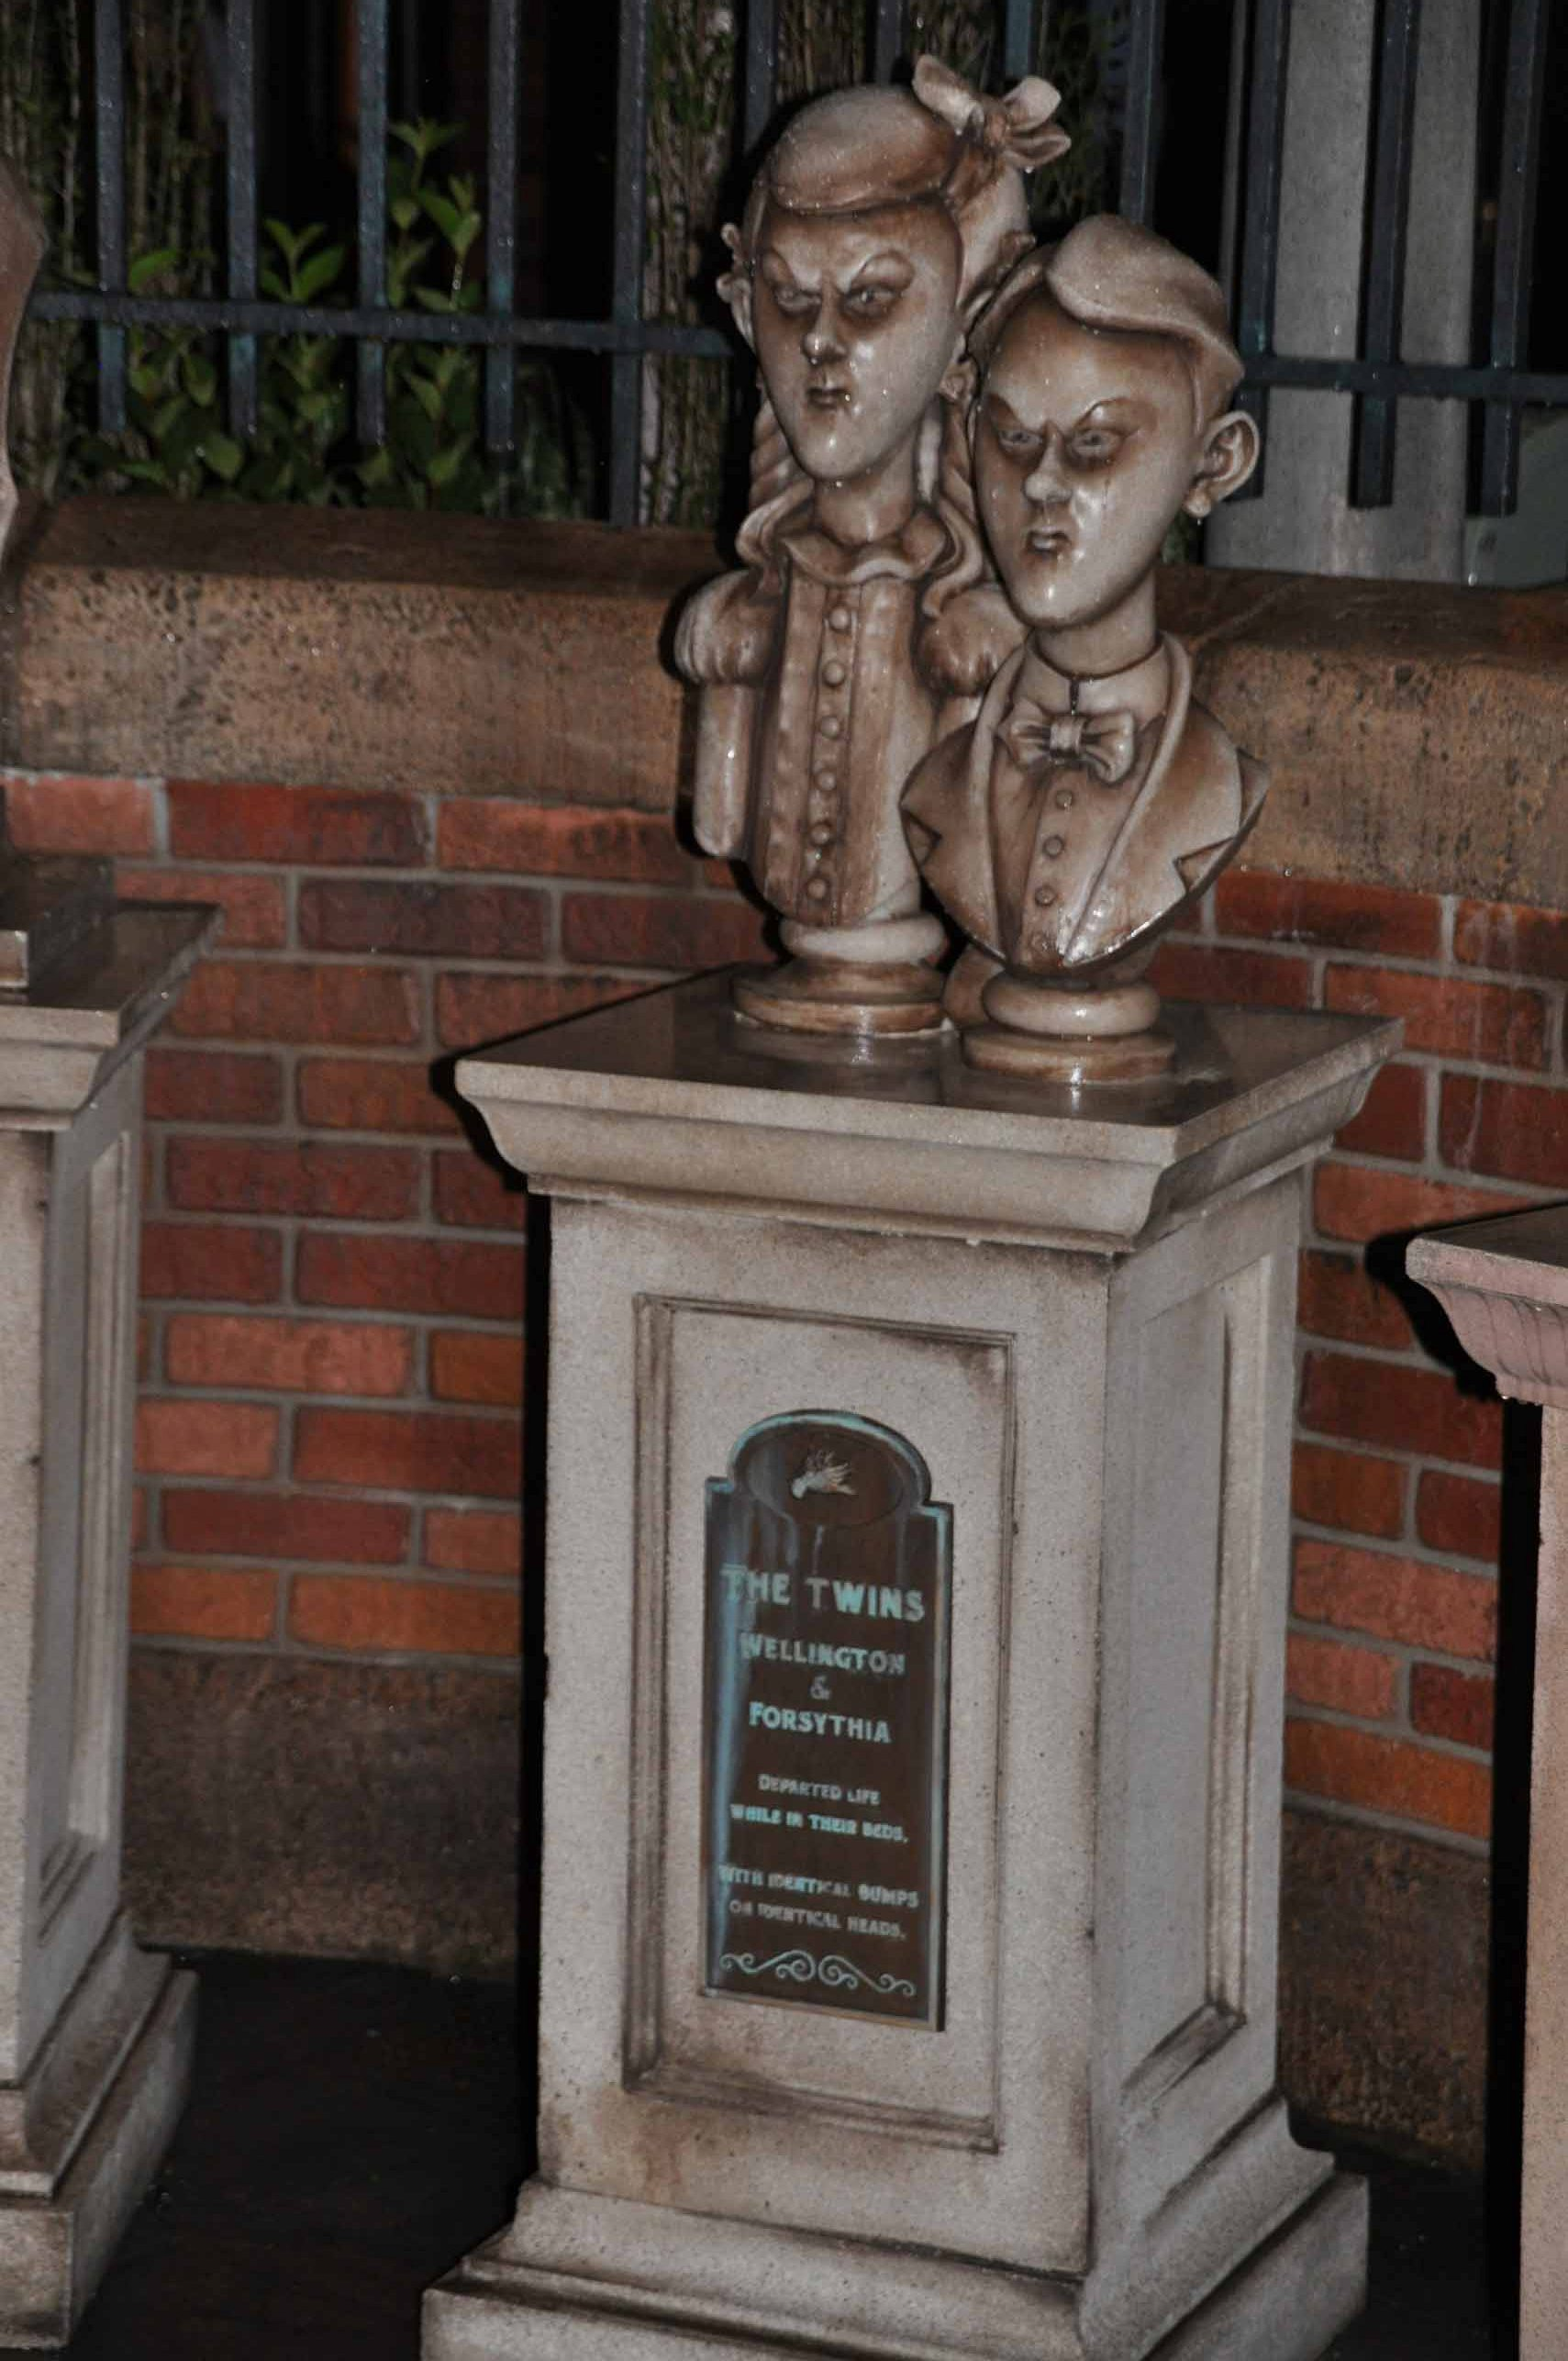 Haunted Mansion Queue - The Twins